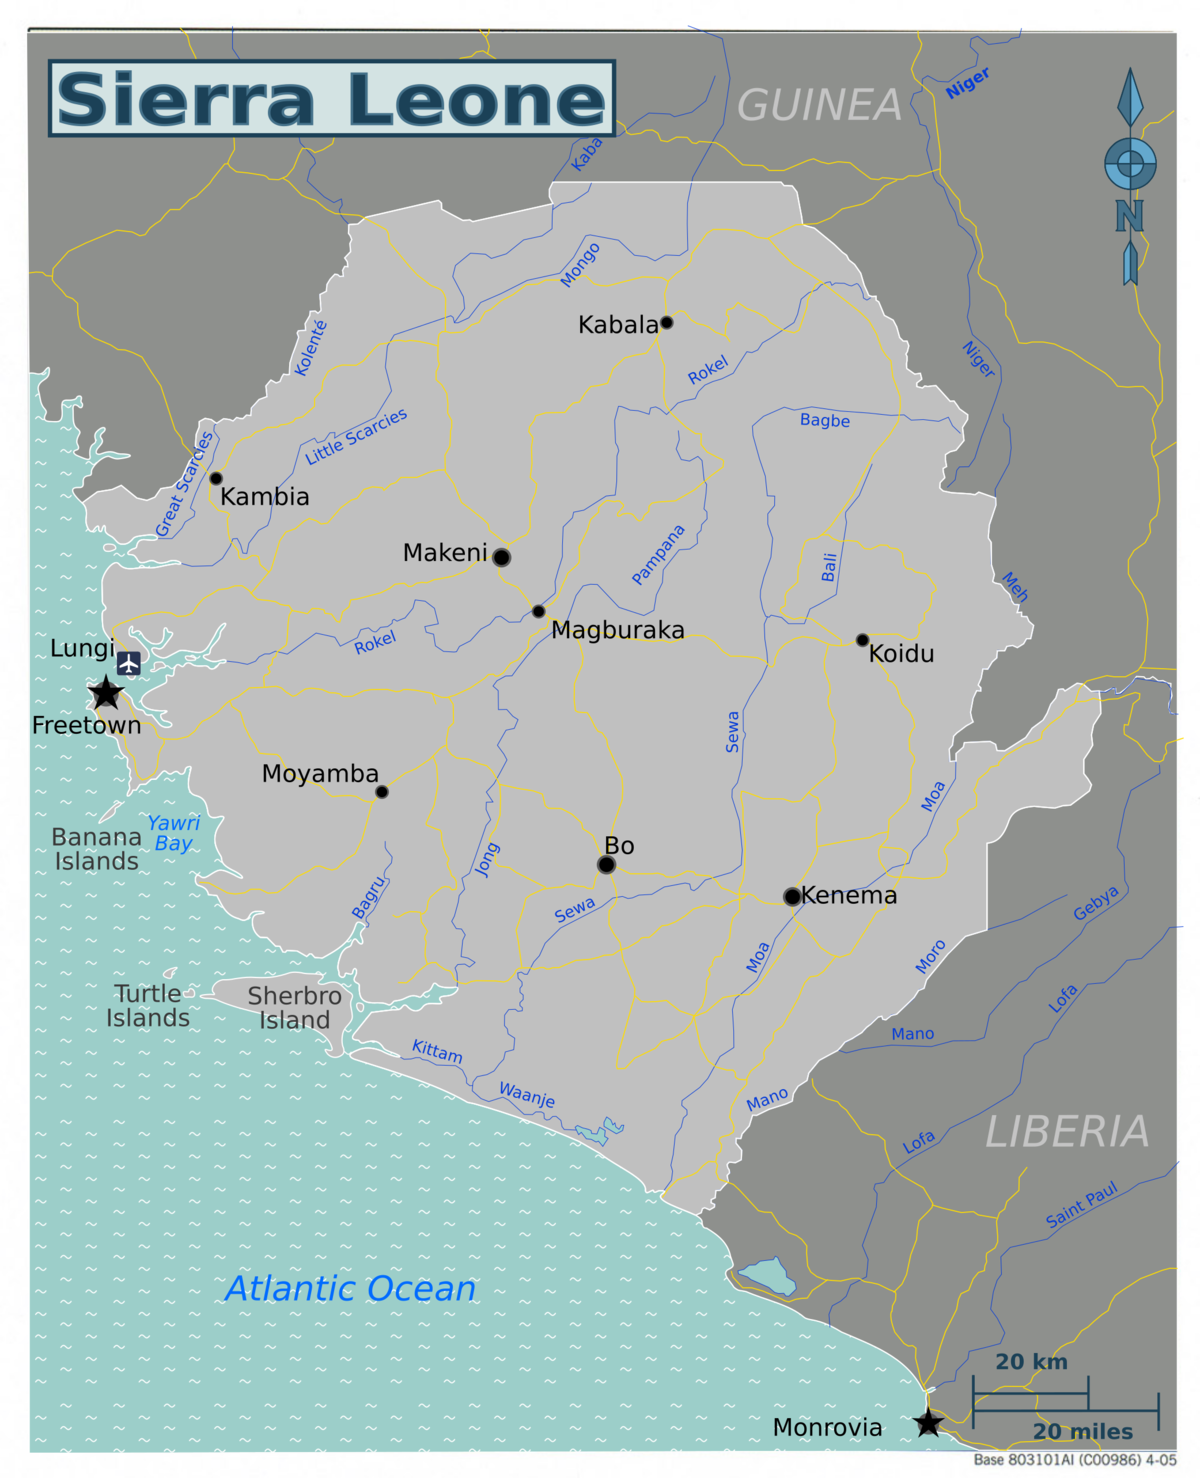 Sierra Leone Travel guide at Wikivoyage